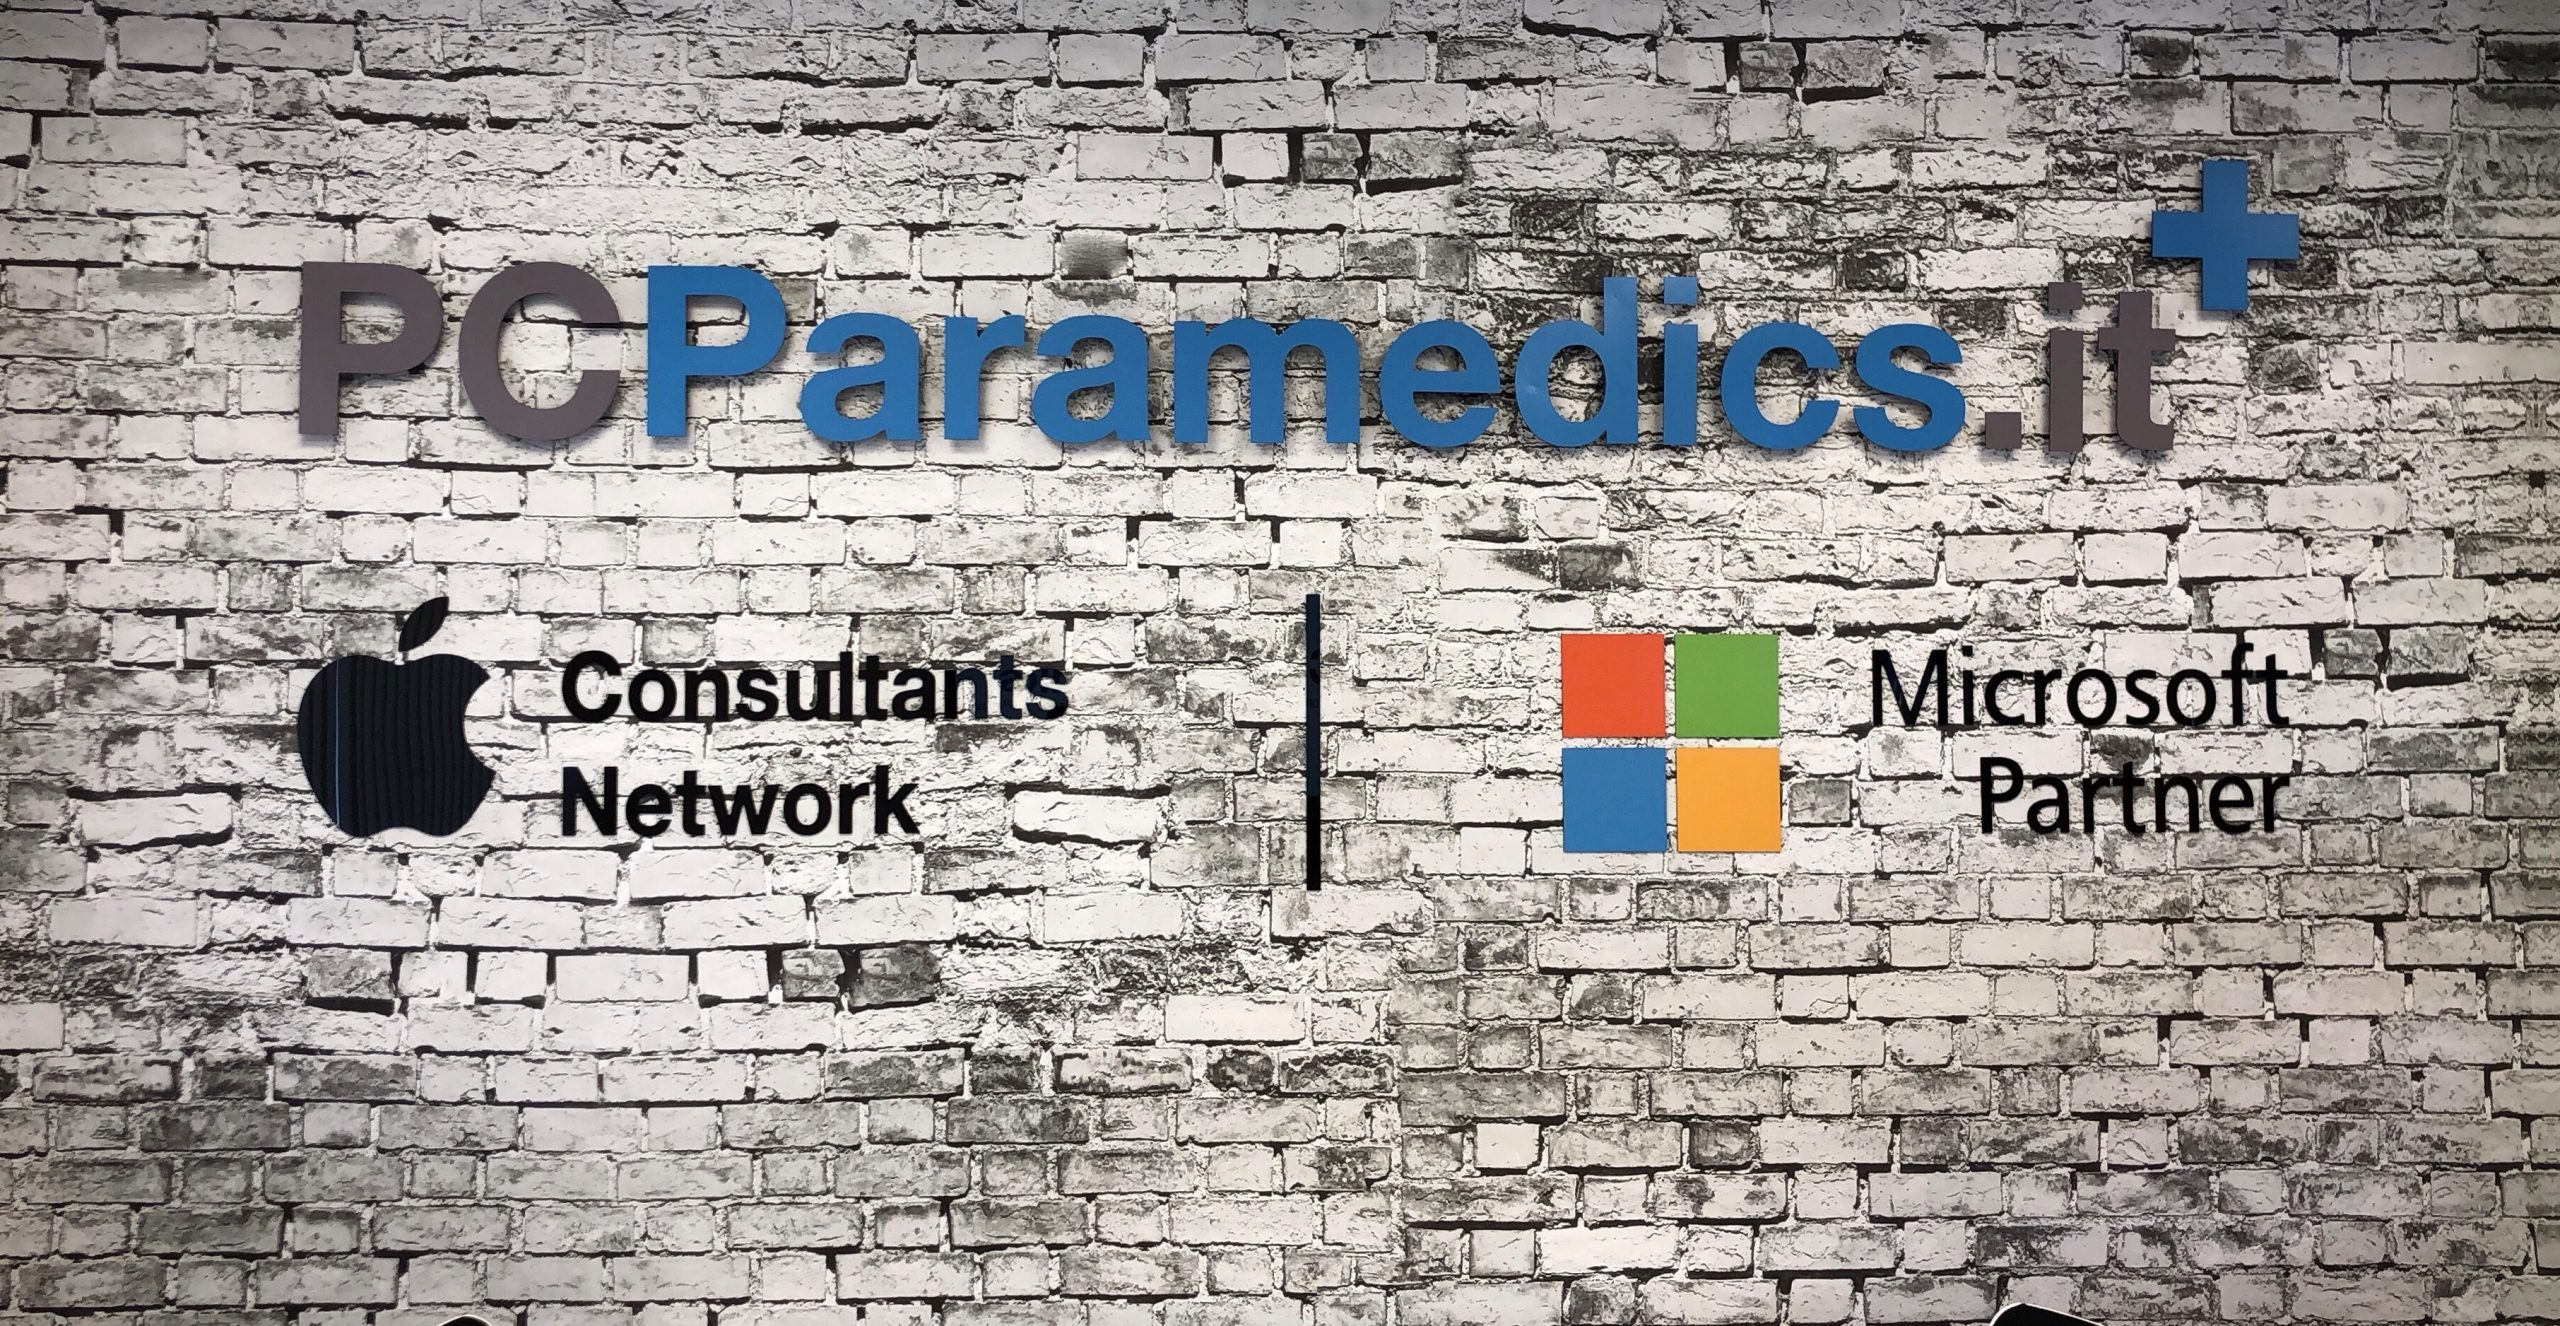 Microsoft Silver Partner and Apple Consultants